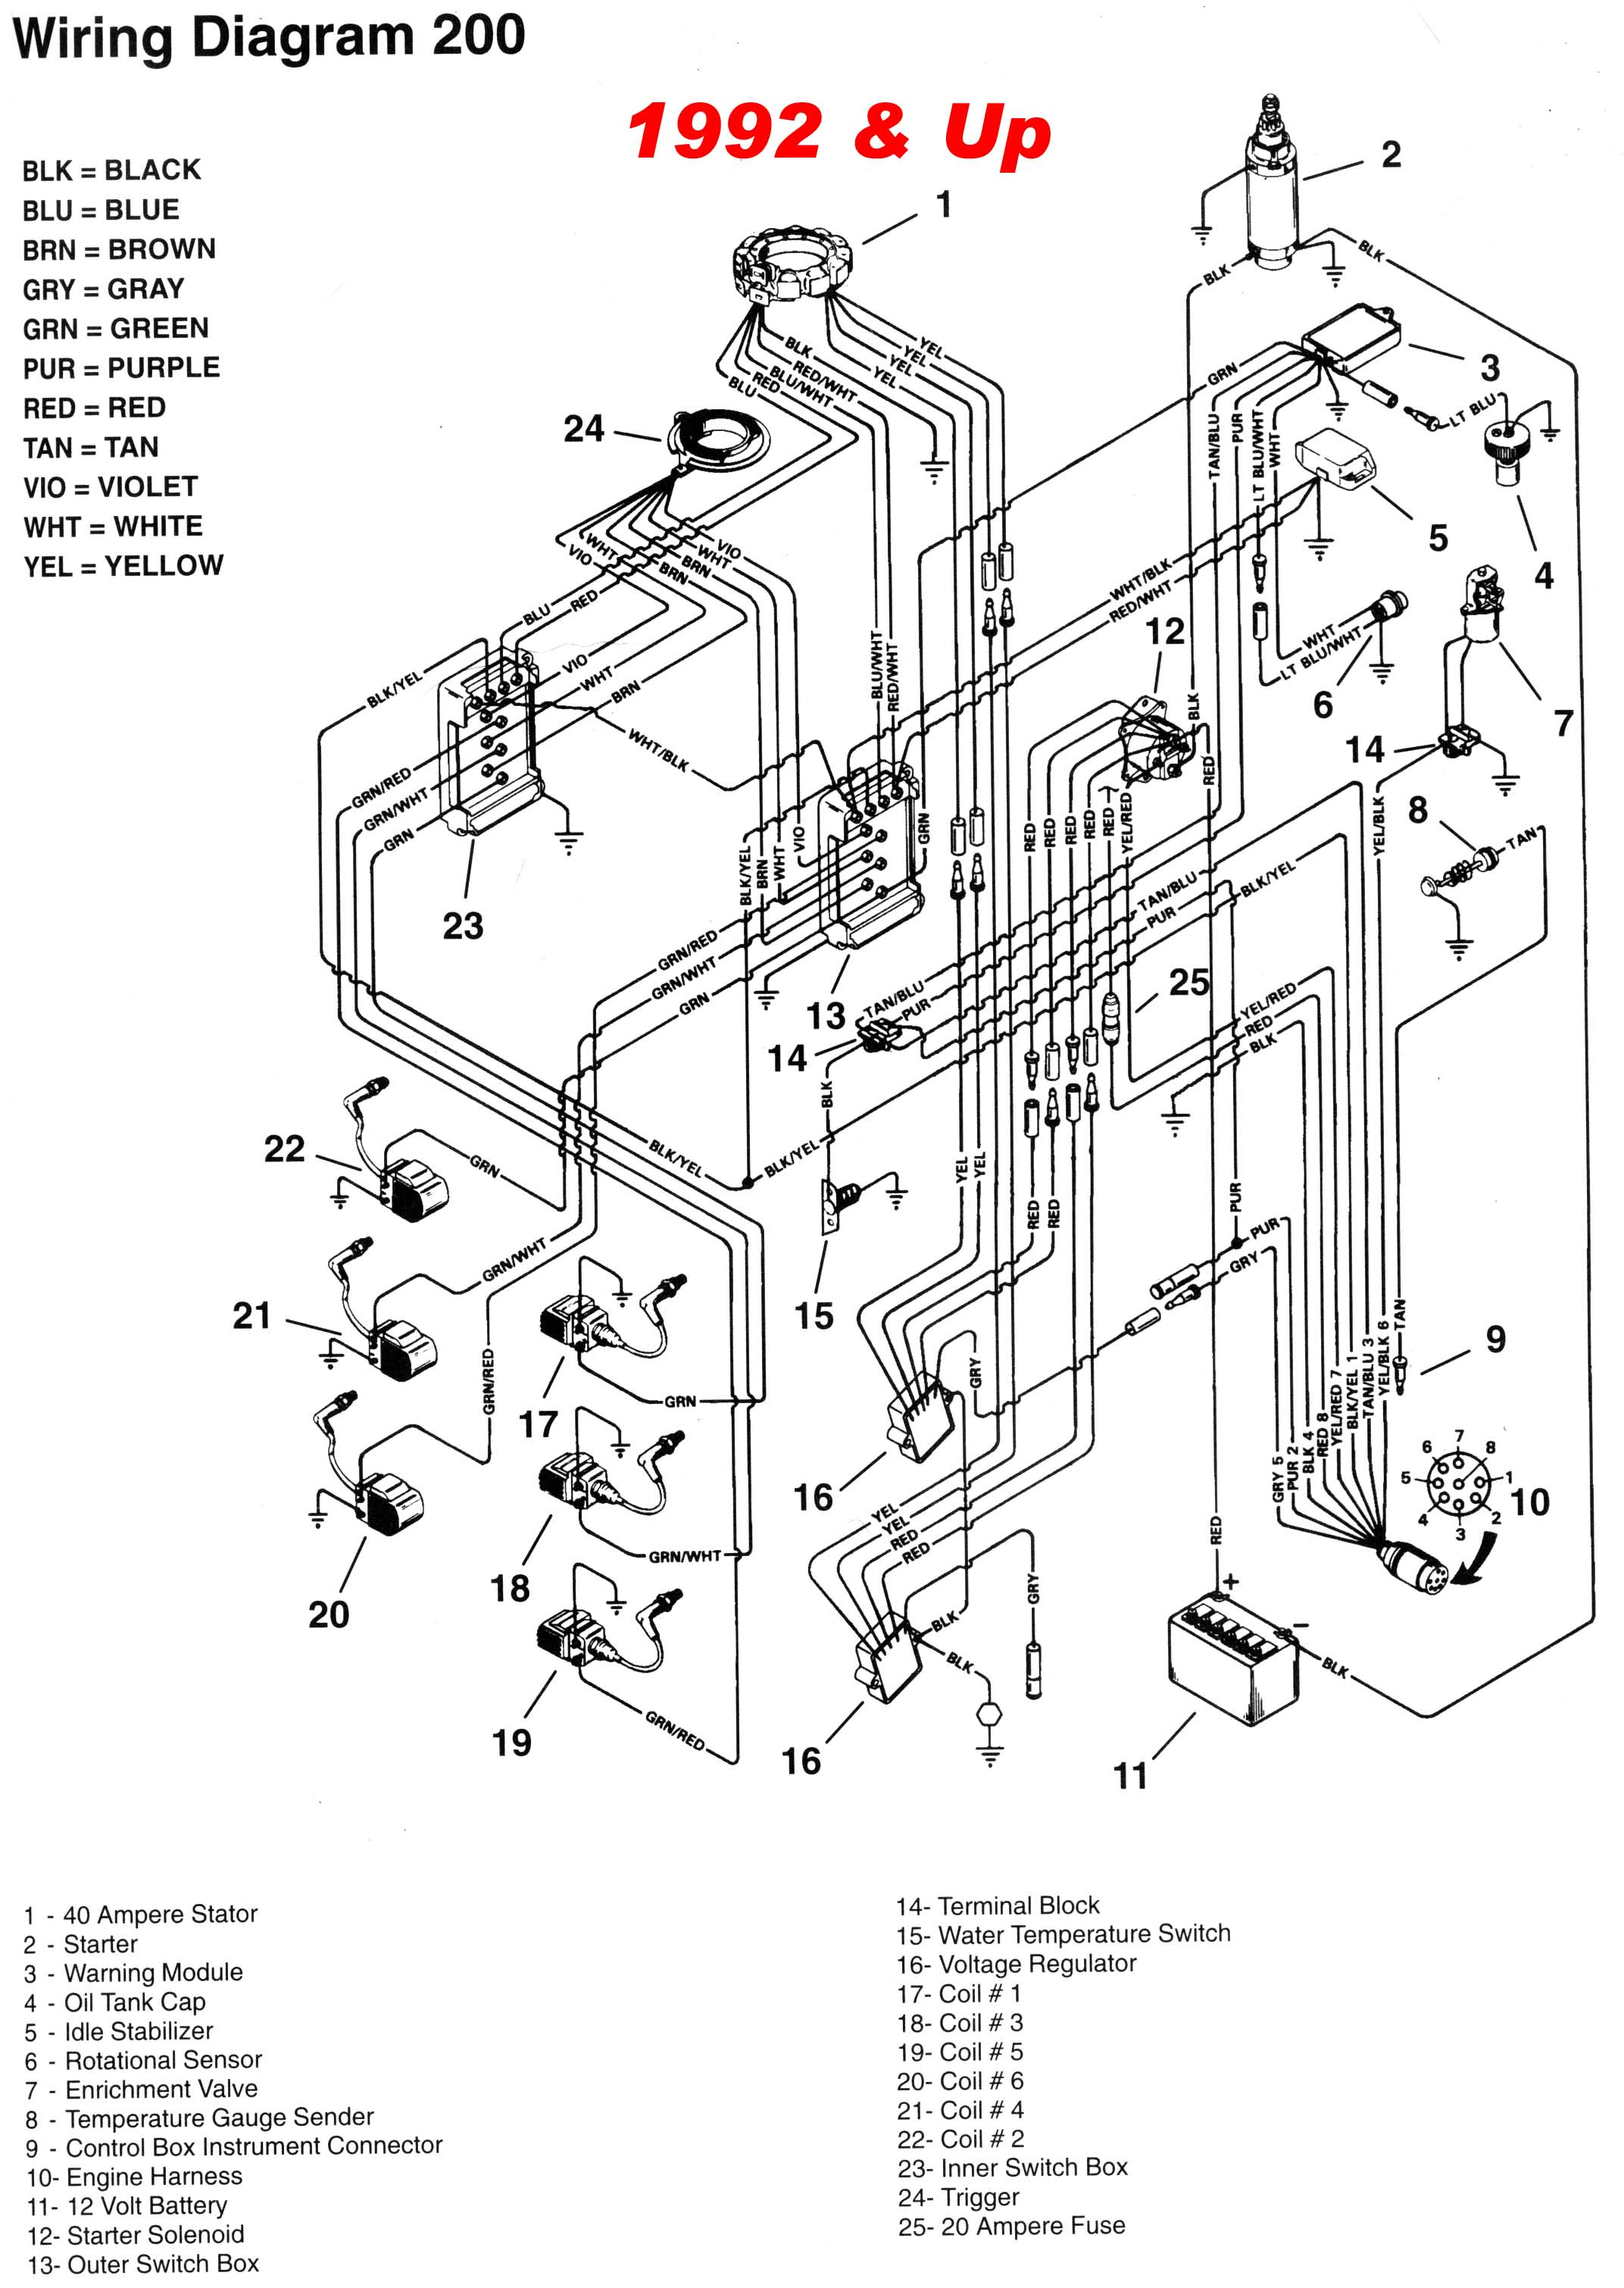 mercury_92up_200_wiring wiring diagram for 1998 mercury outboard 150 readingrat net yamaha blaster 200 wiring diagram at soozxer.org